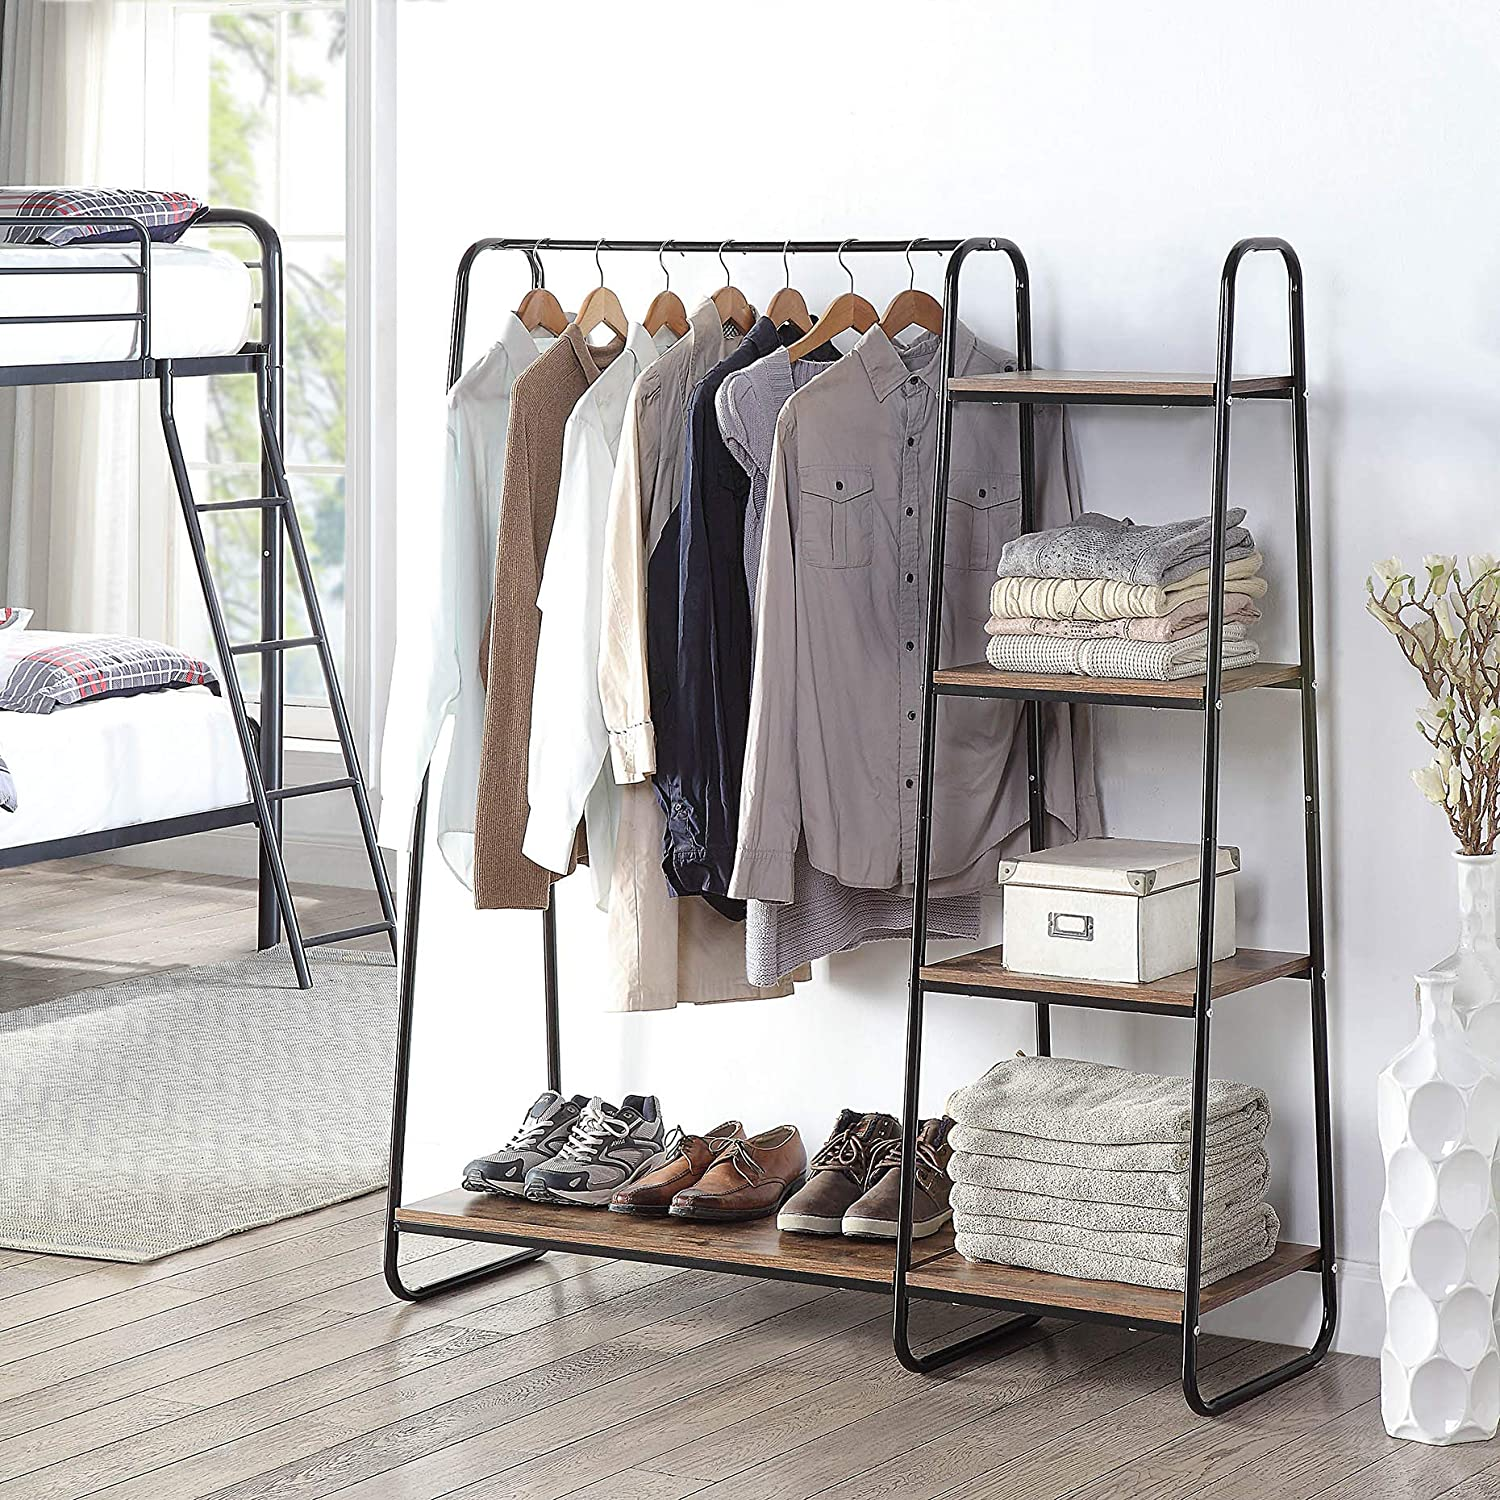 extra wide clothes rack with shelving and shoe rack